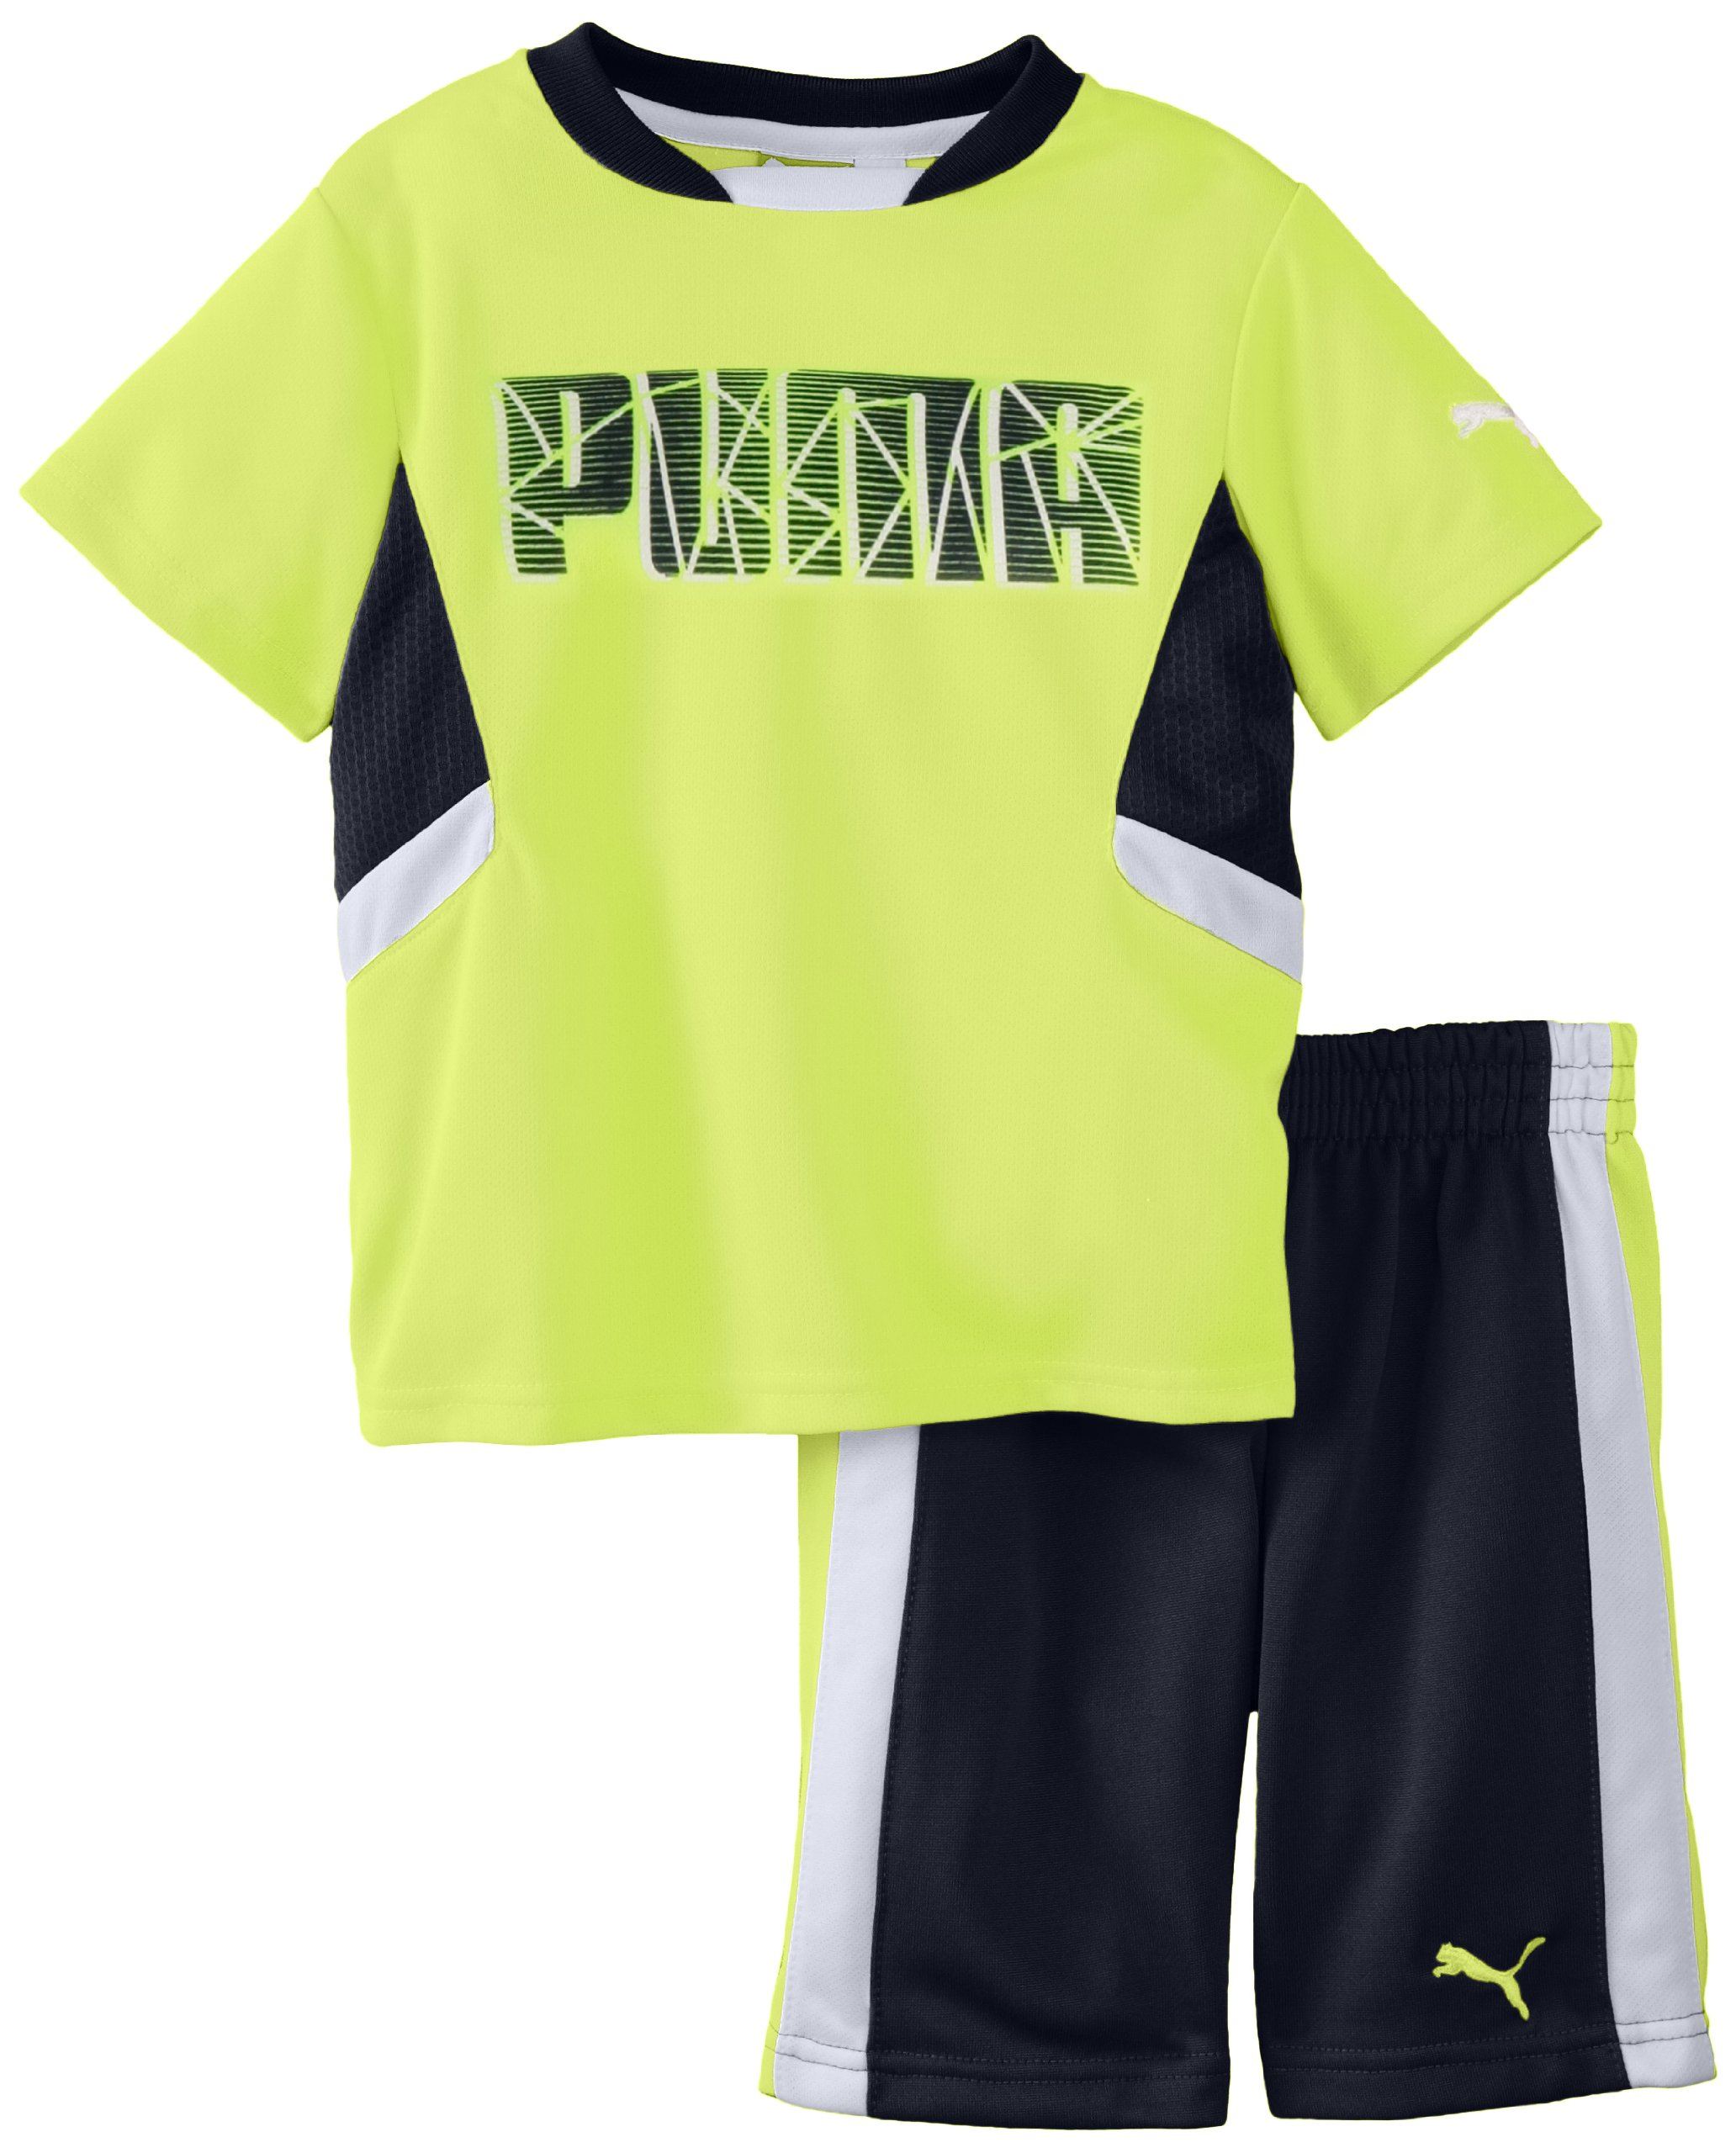 PUMA Little Boys' Toddler Shatter Set, Safety Yellow, 2T by PUMA